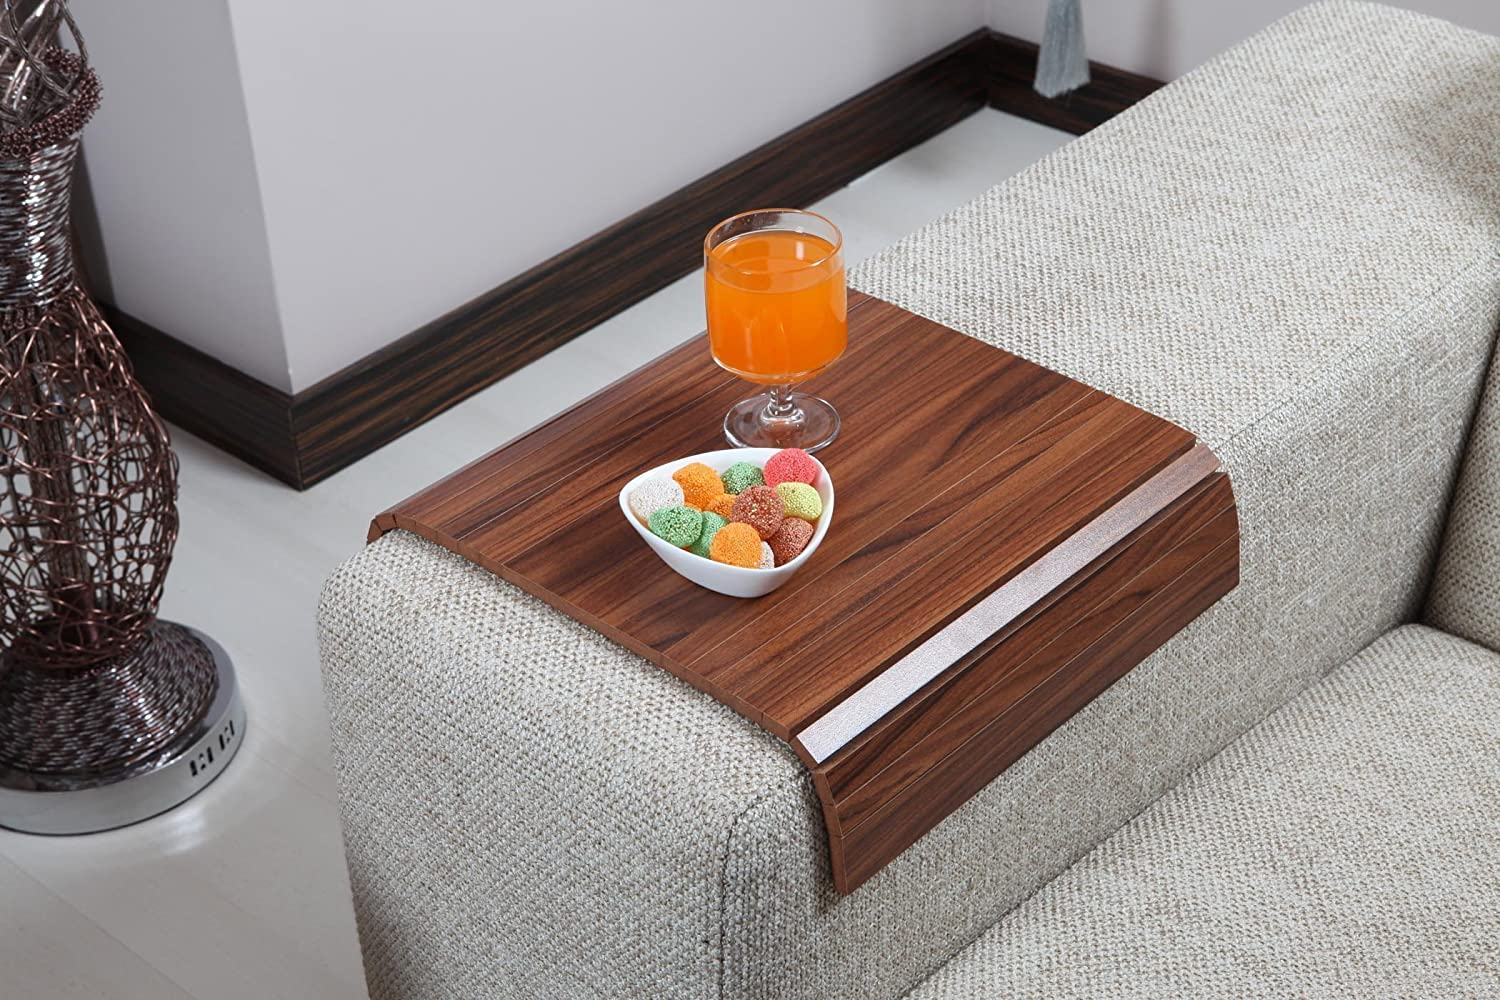 Sofa Tray Table (Canadian Walnut), Sofa Arm Tray, Armrest Tray, Sofa Arm Table, Couch Tray, Coffee Table, Sofa Table, Wood Tray